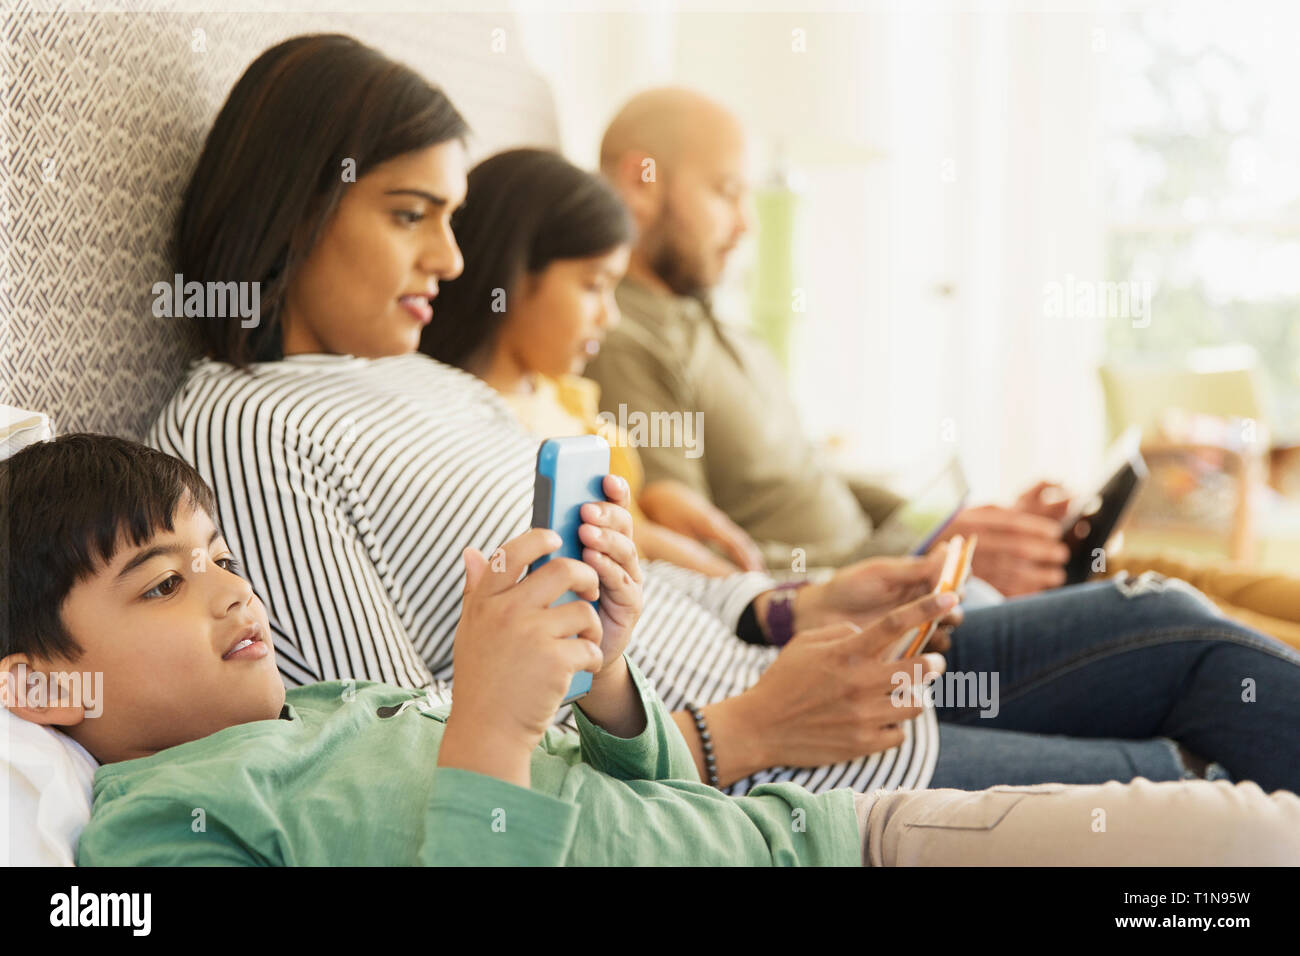 Family using technology on bed Stock Photo